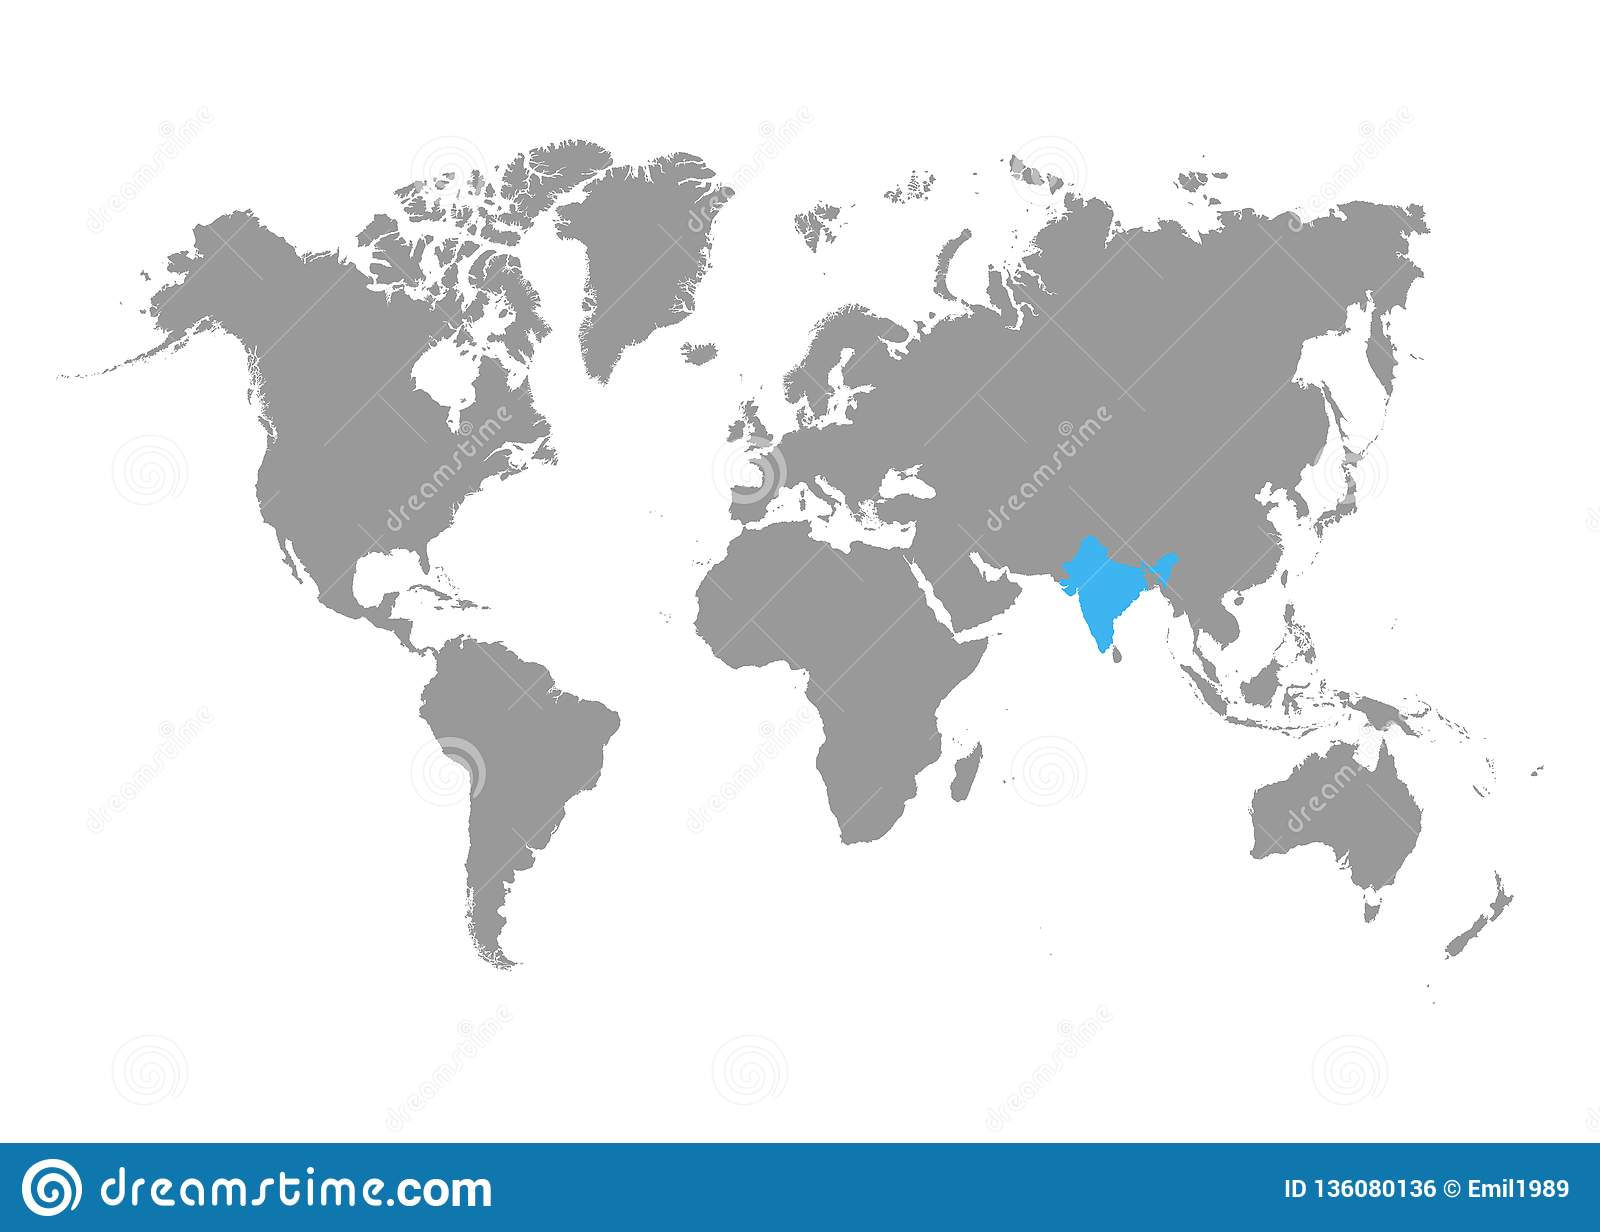 The Map Of India Is Highlighted In Blue On The World Map Stock ... India Map World Picture on digital technology in india, kashmir india, mumbai india, animals india, globe india, most beautiful places india, top religions in india, world yoga day in india, geography india, skype india, world maps before 1859, goa india, world continents india, people india, mountains in india, world from vietnam, world atlas, pitchers from india, places in india, states of india,